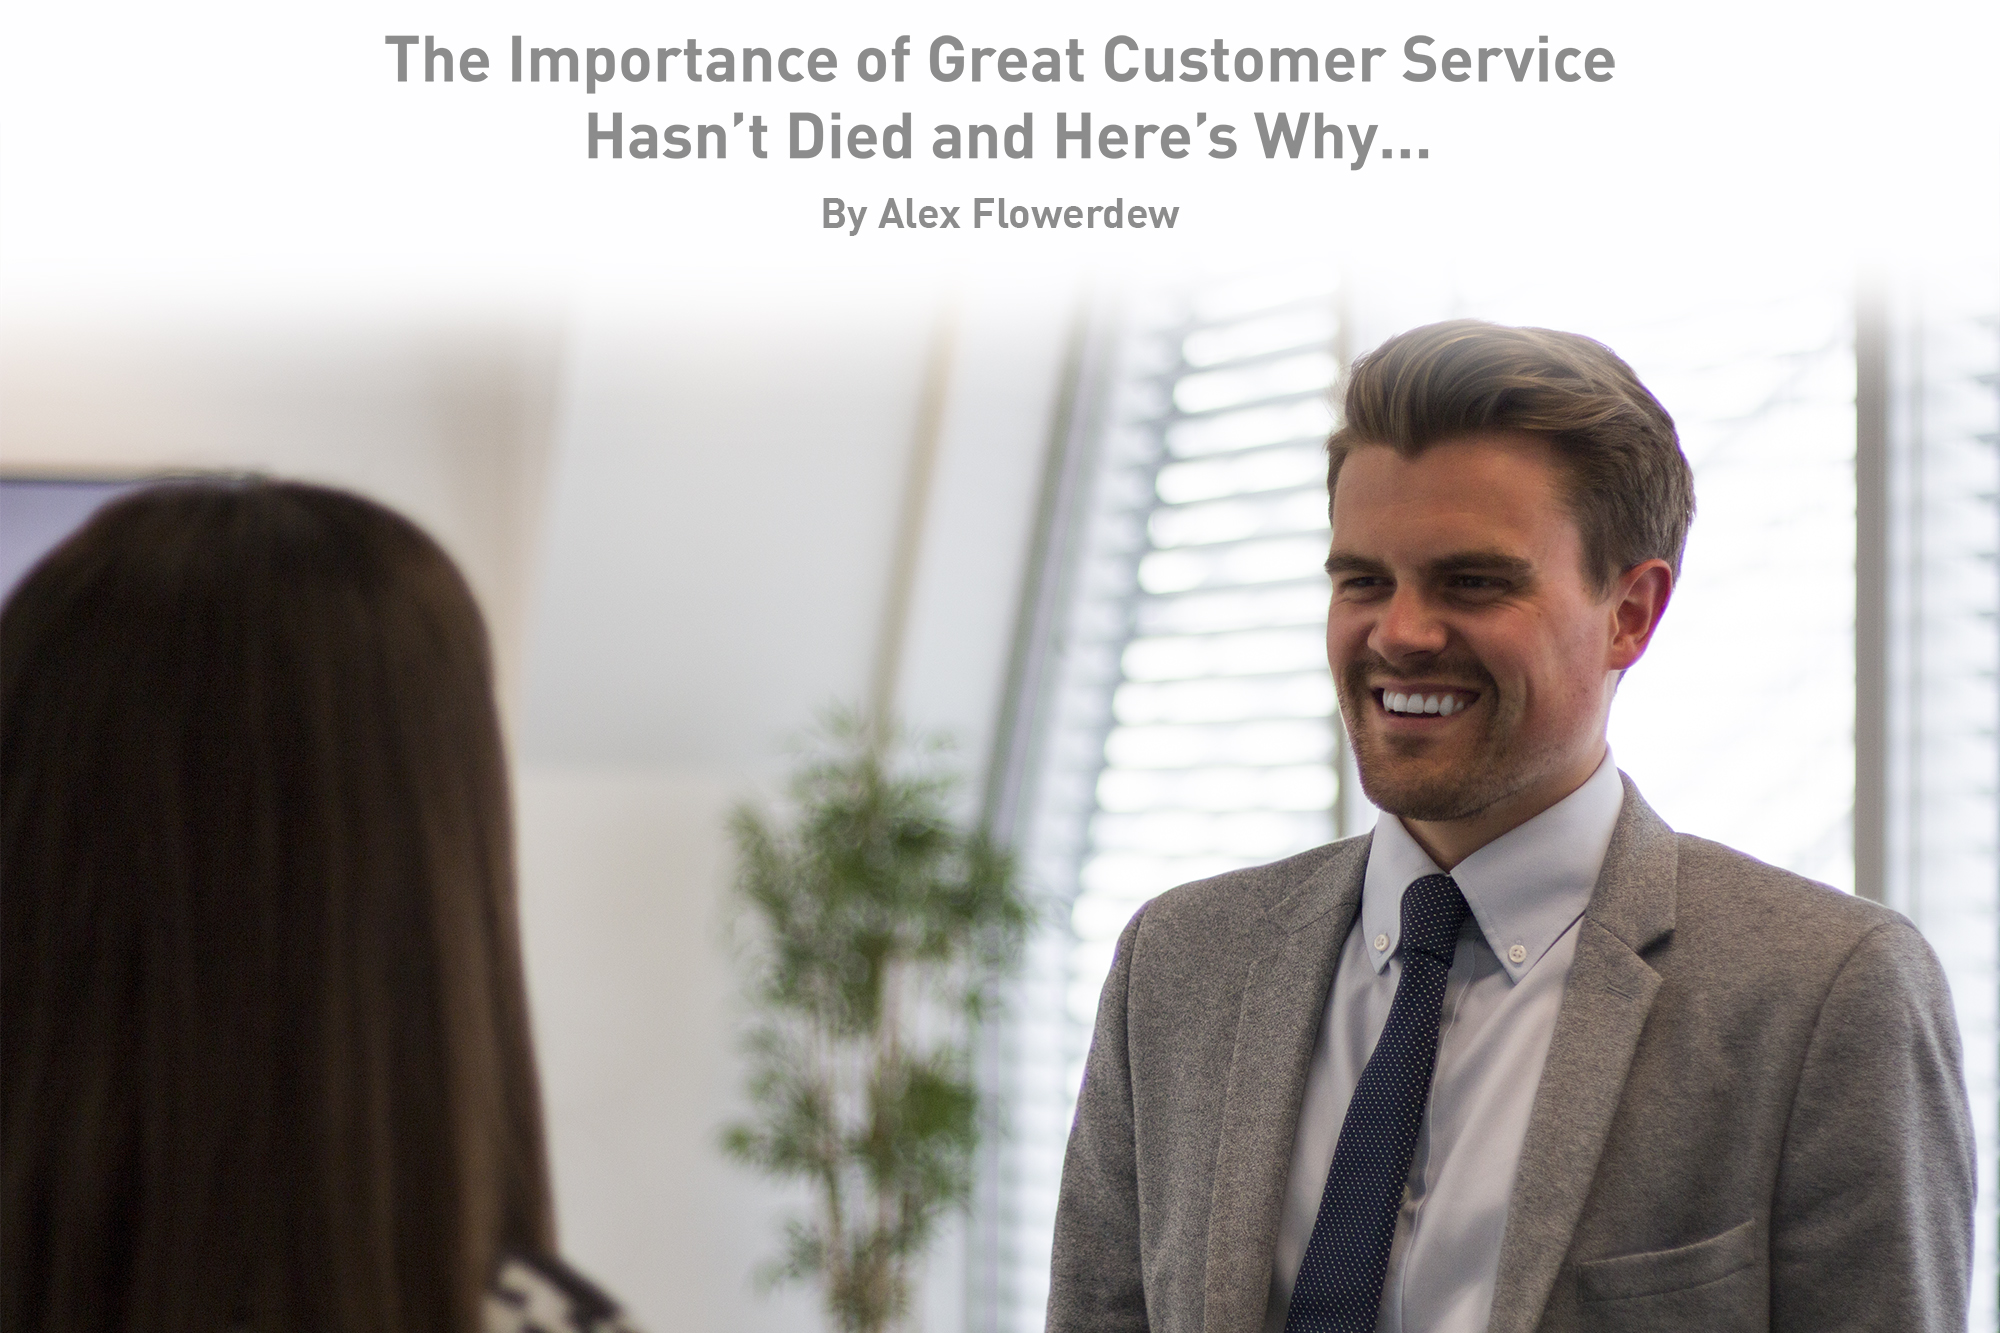 Great Customer Service is Not Dead...